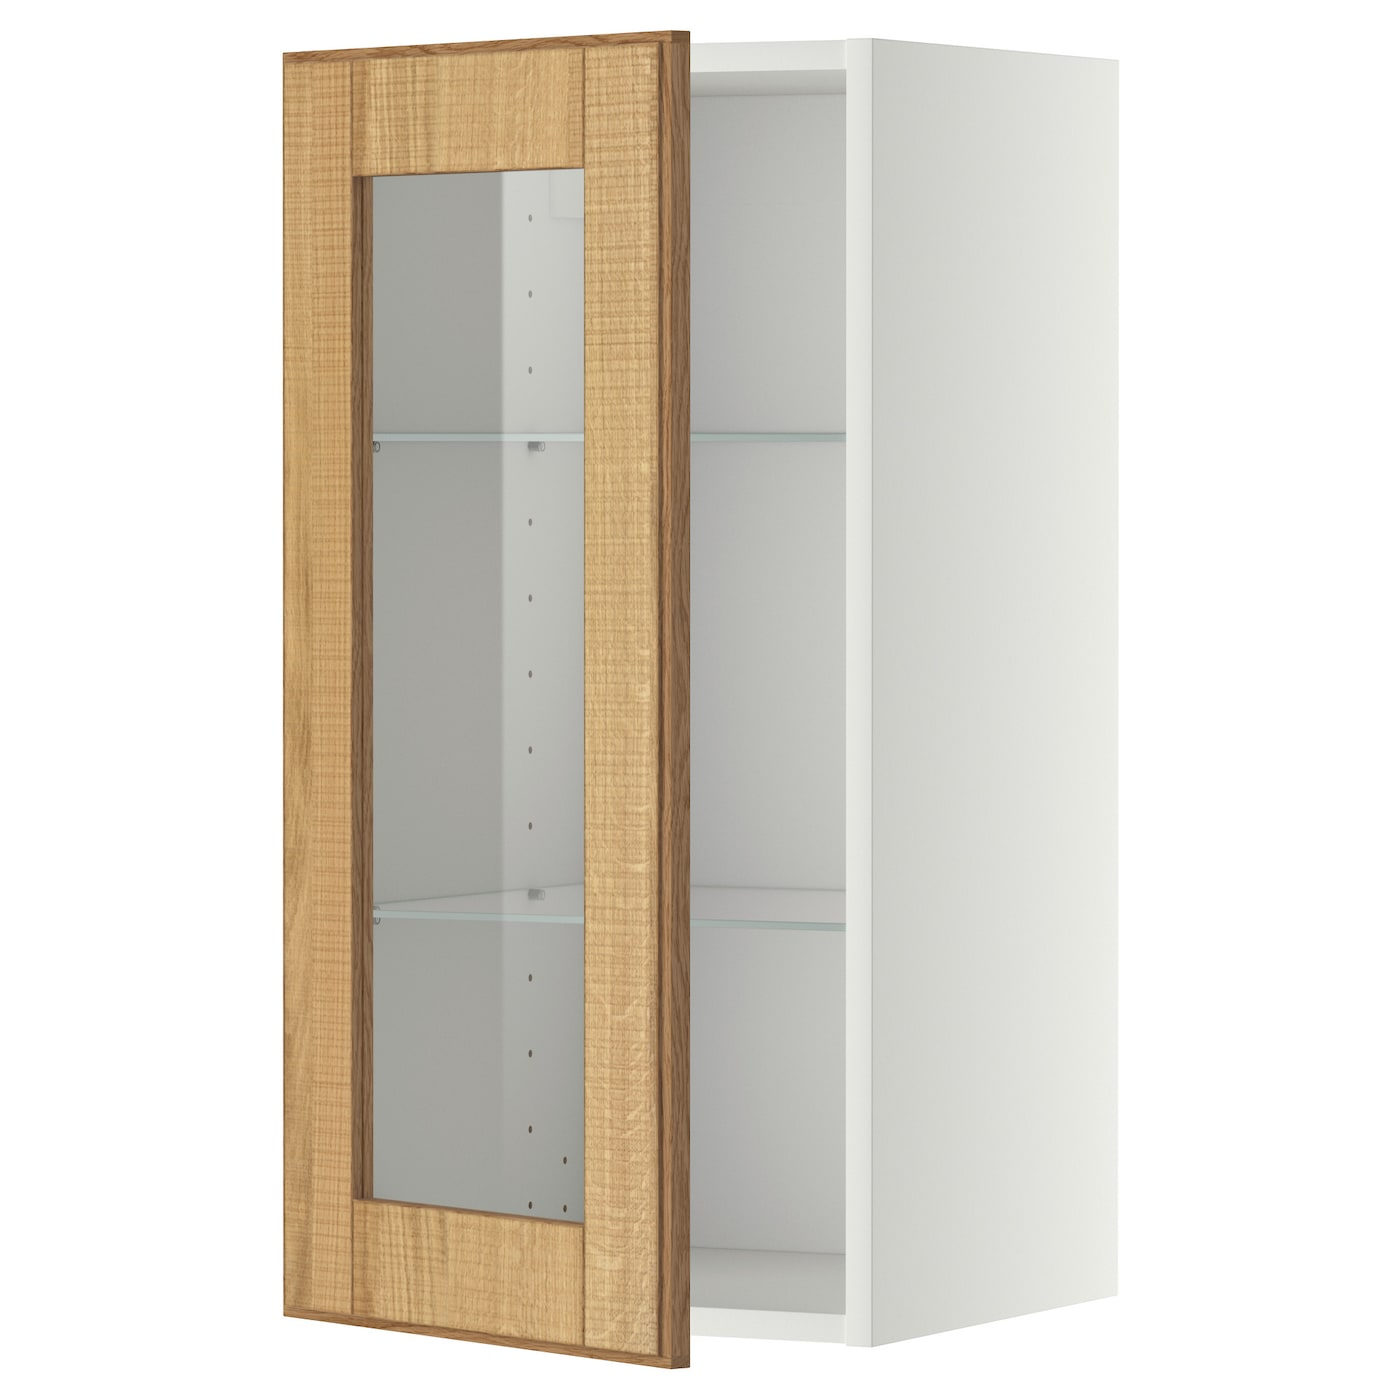 Metod wall cabinet w shelves glass door white hyttan oak - Ikea glass cabinets ...